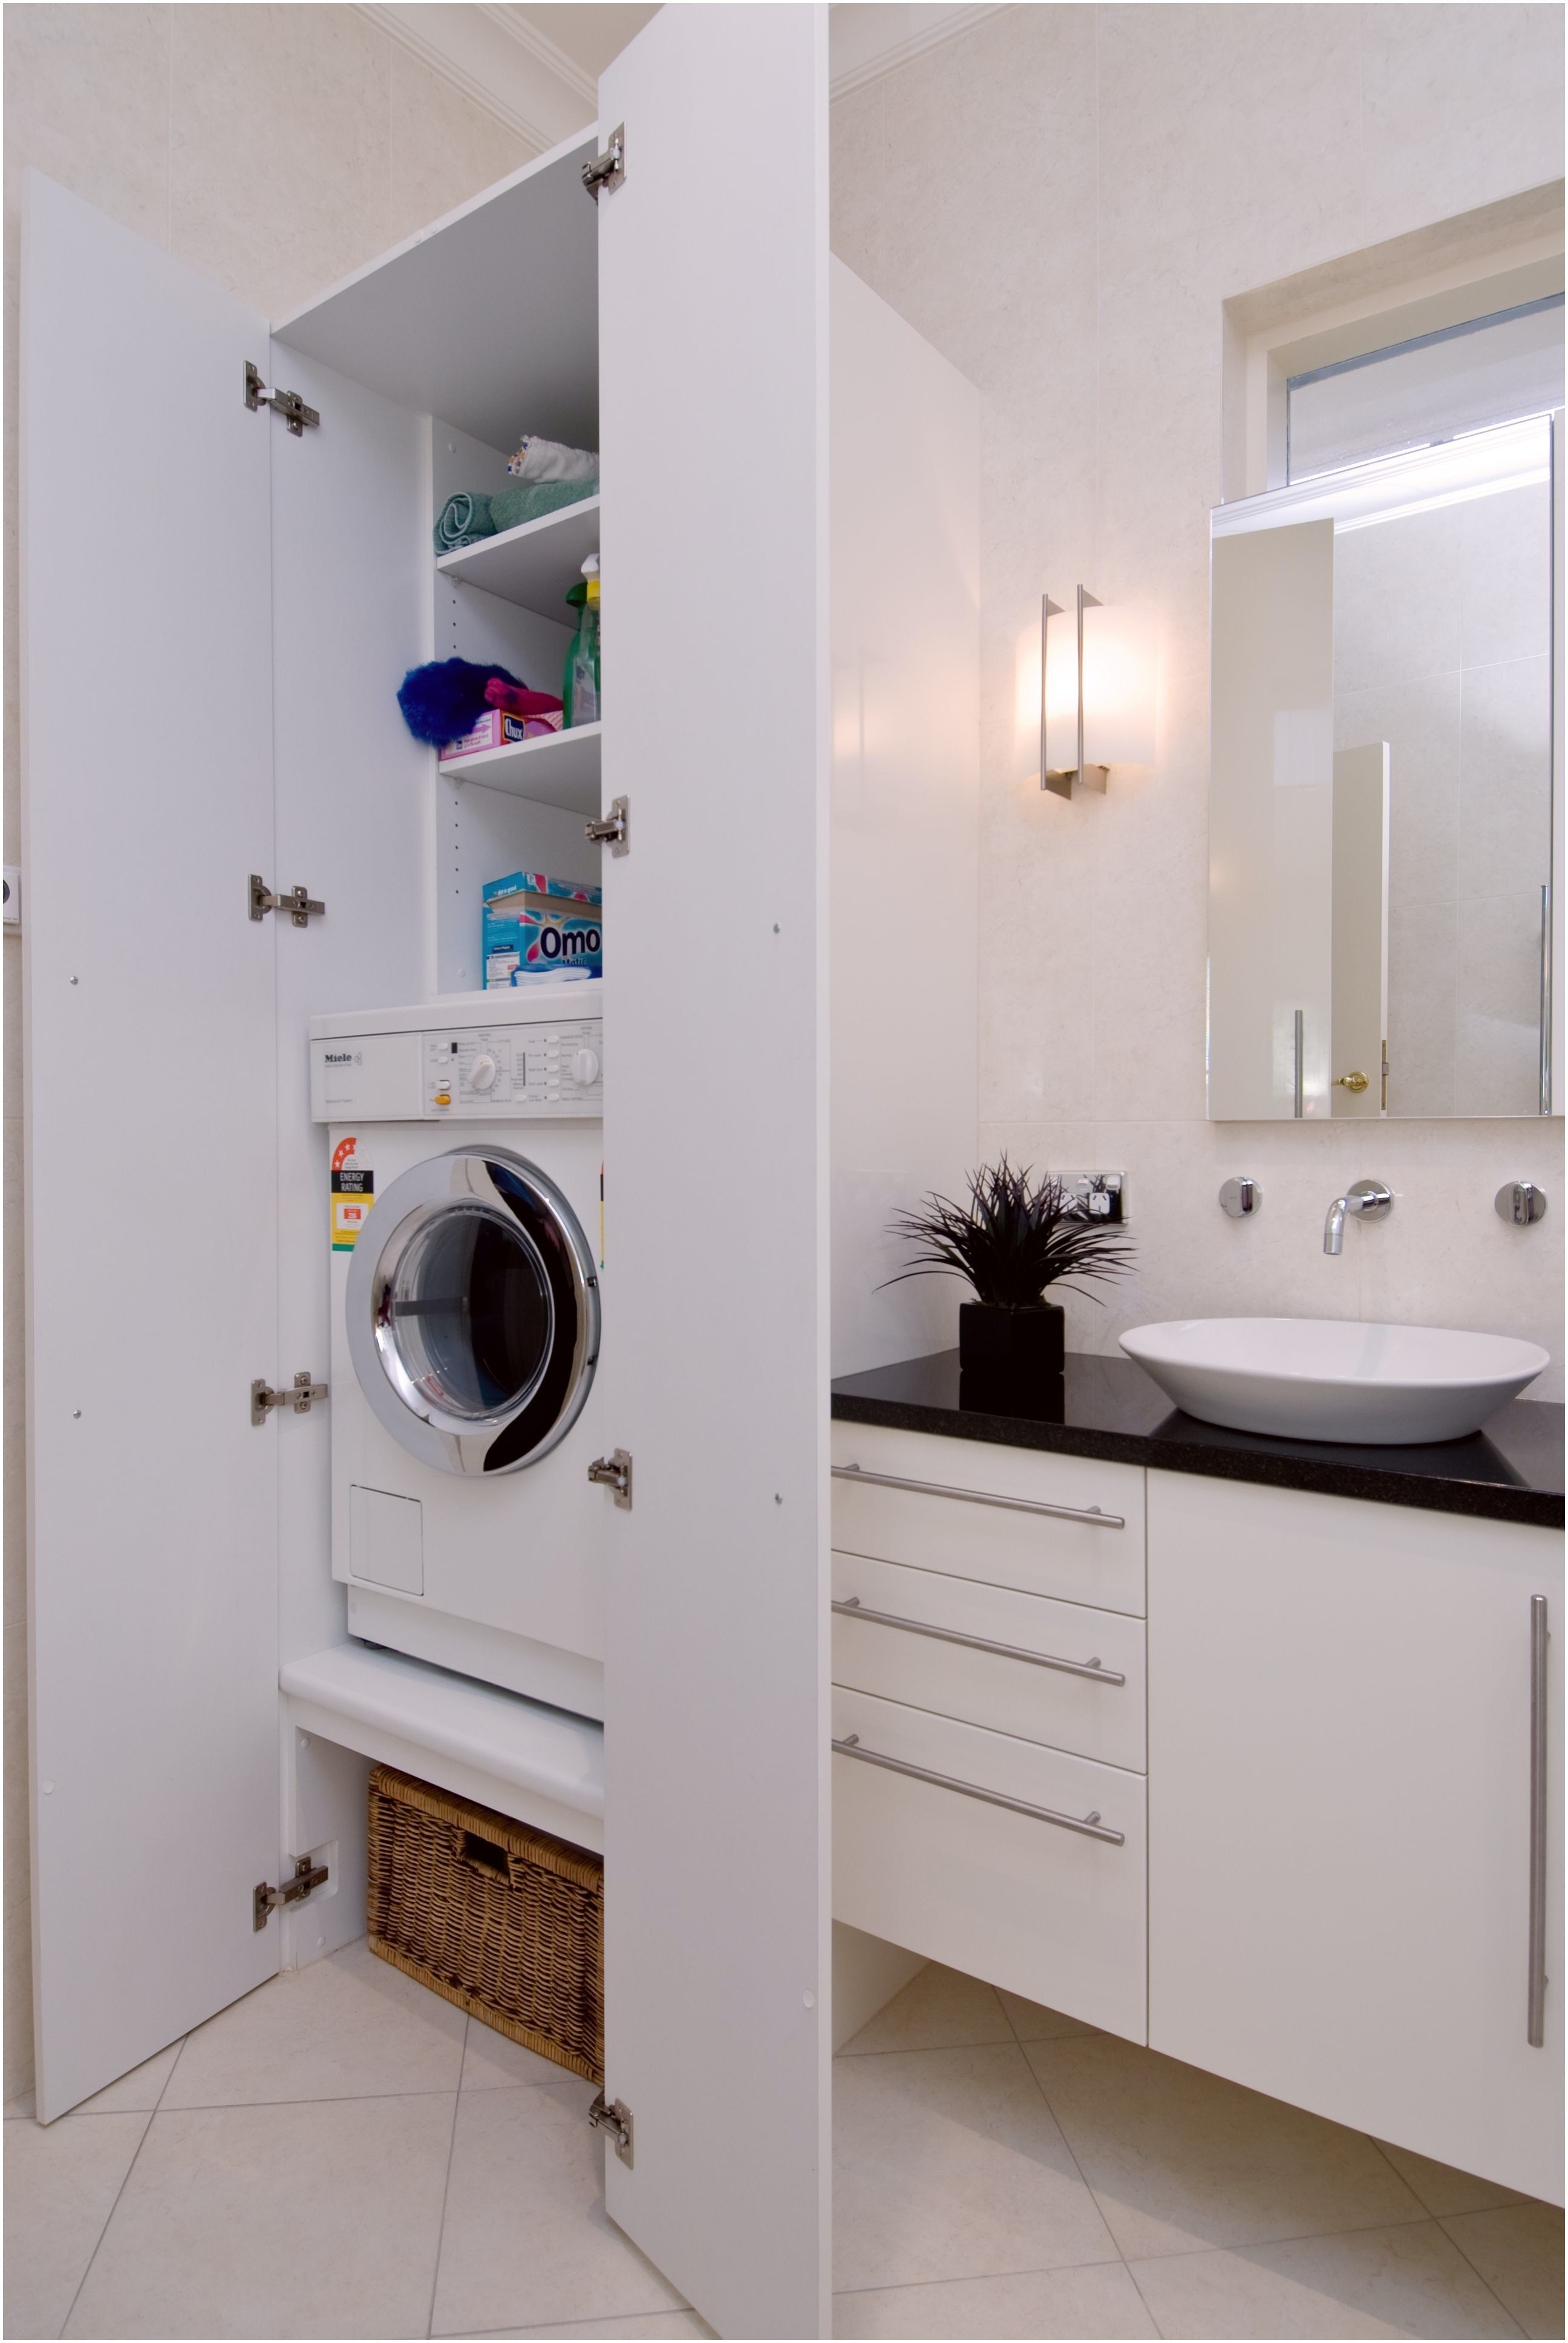 More Click Amazing Bathroom Ideas Washer Dryer Toilet Washer